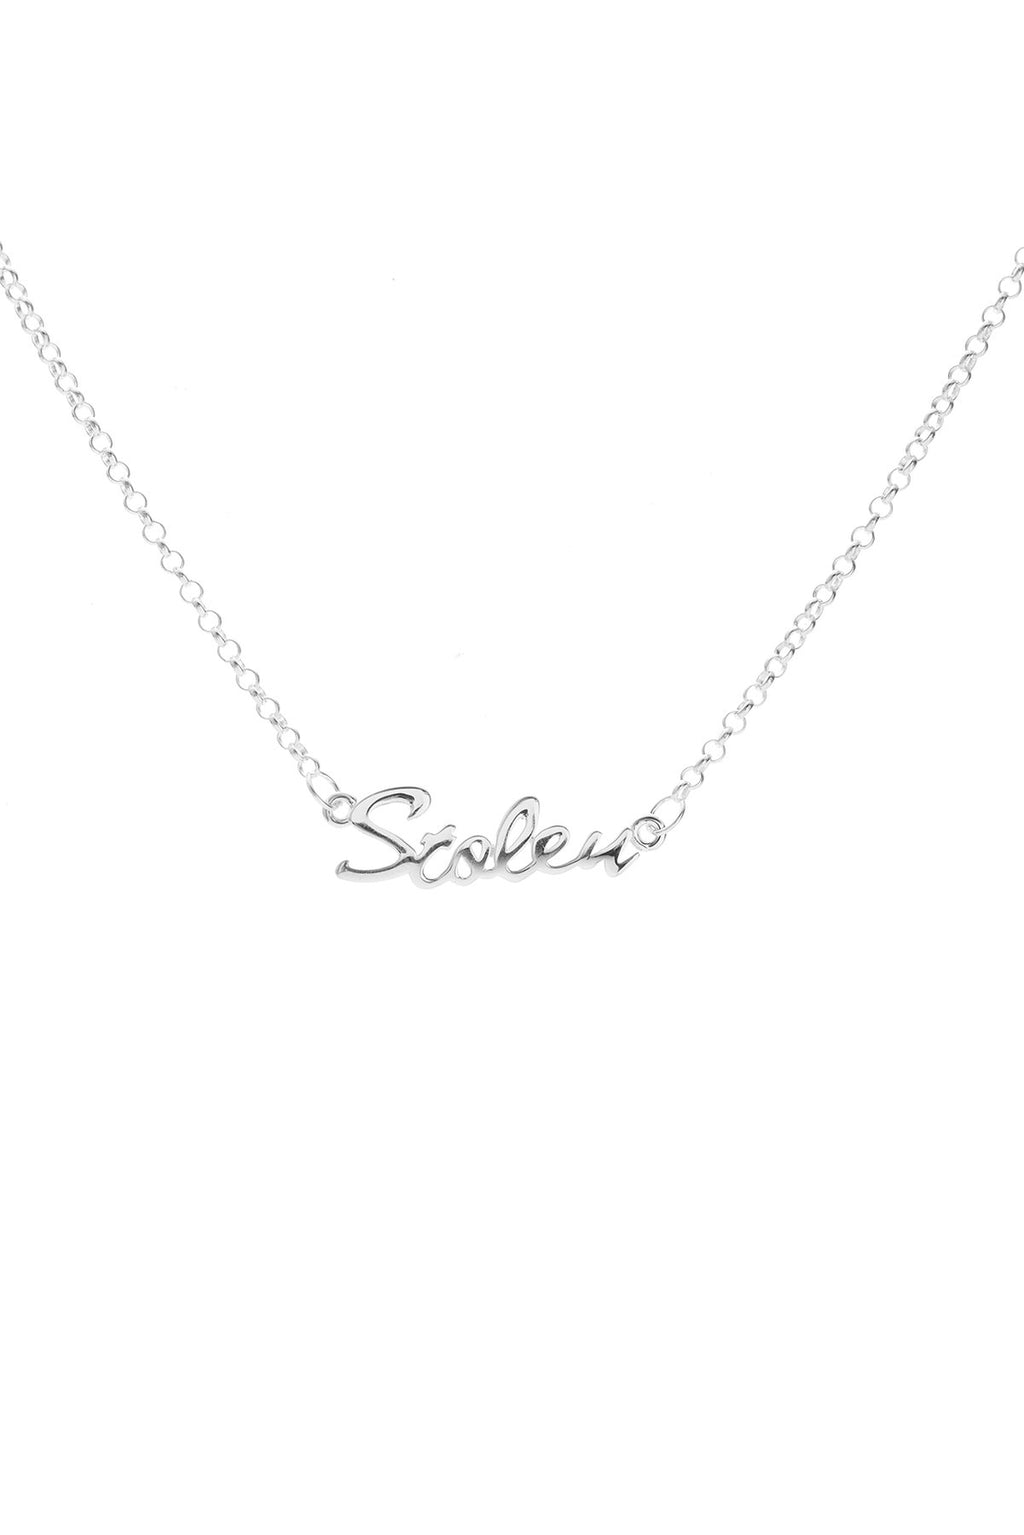 STOLEN SCRIPT NECKLACE